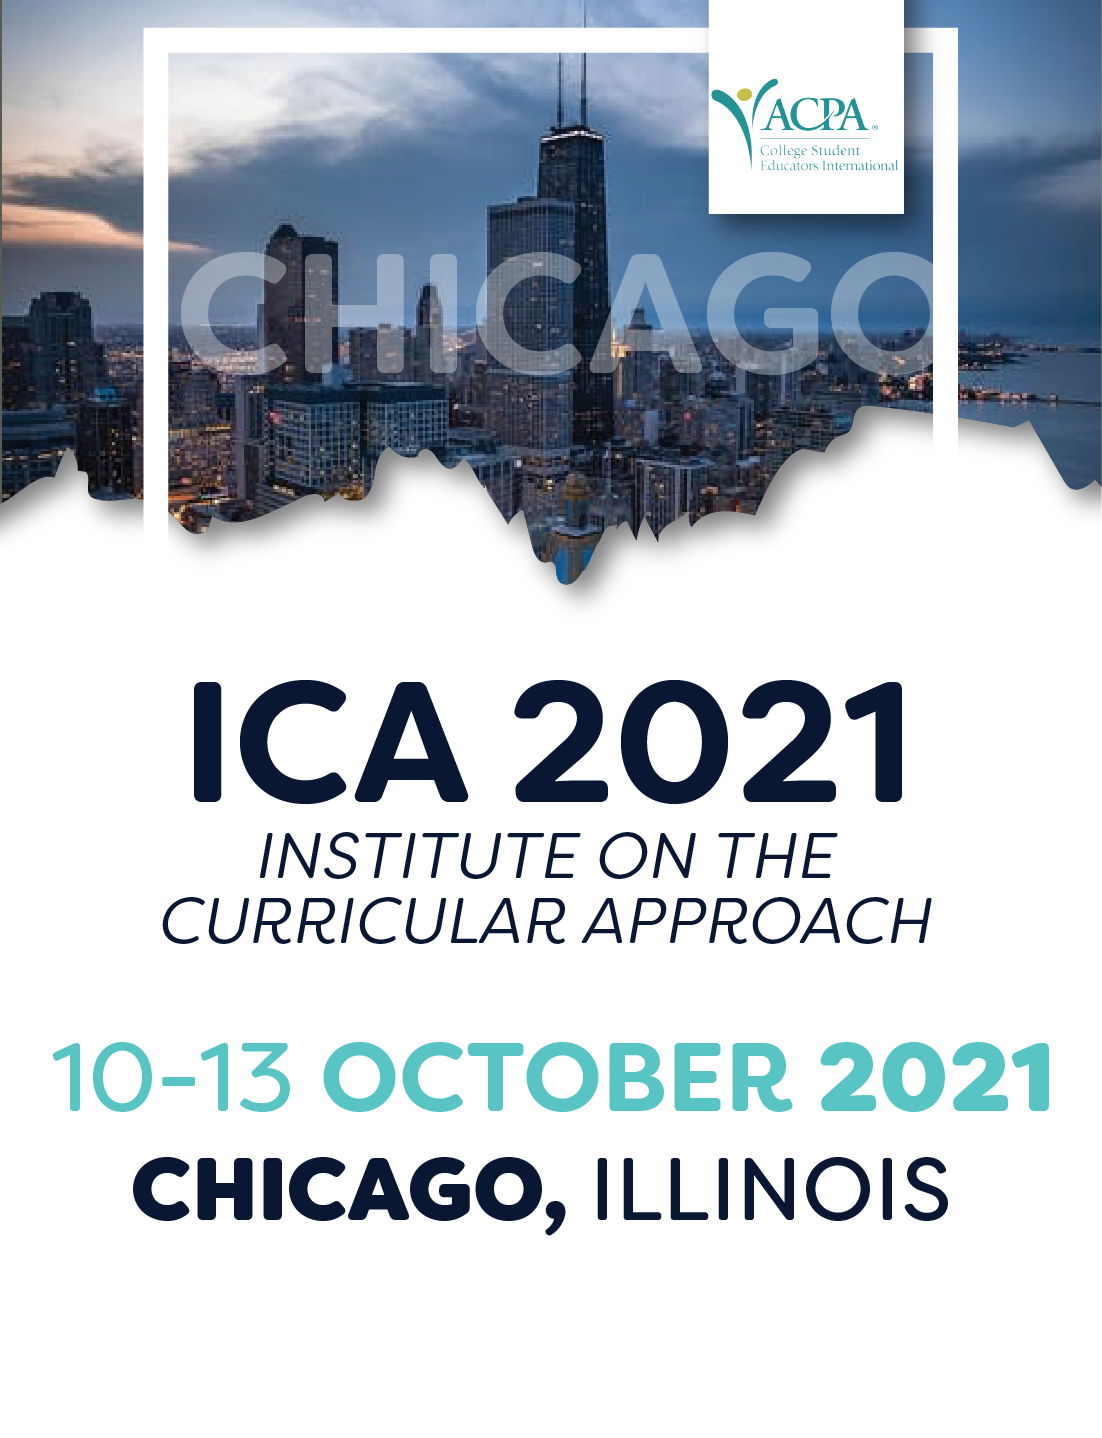 ICA 2021. Institute on the Curricular Approach. 10-13 October 2021. Chicago, Illinois